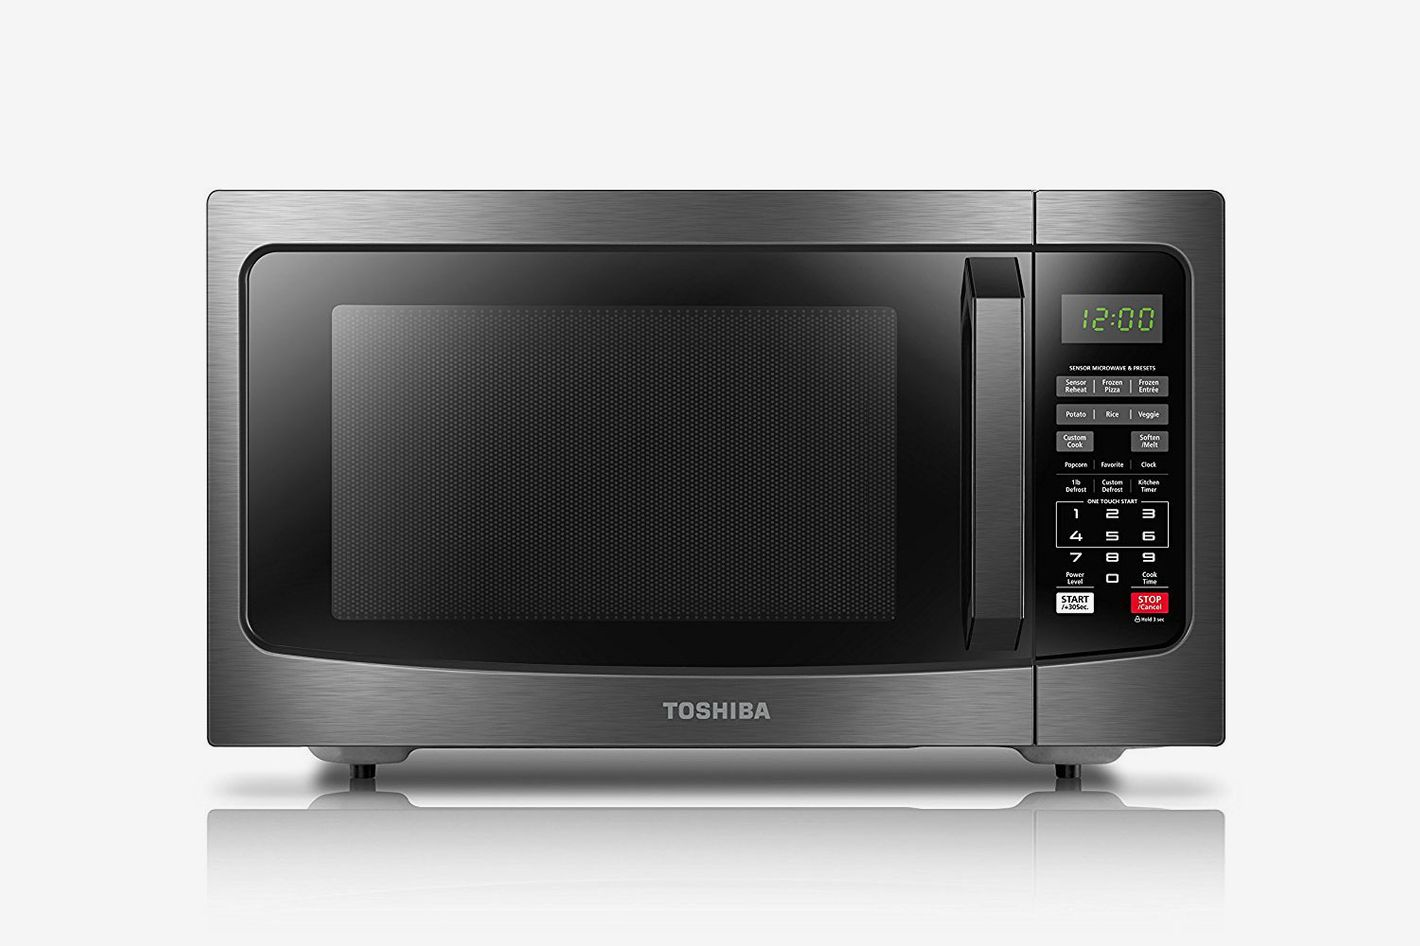 Best Quiet Countertop Microwave Toshiba Em925a5a Bs Oven With Sound On Off